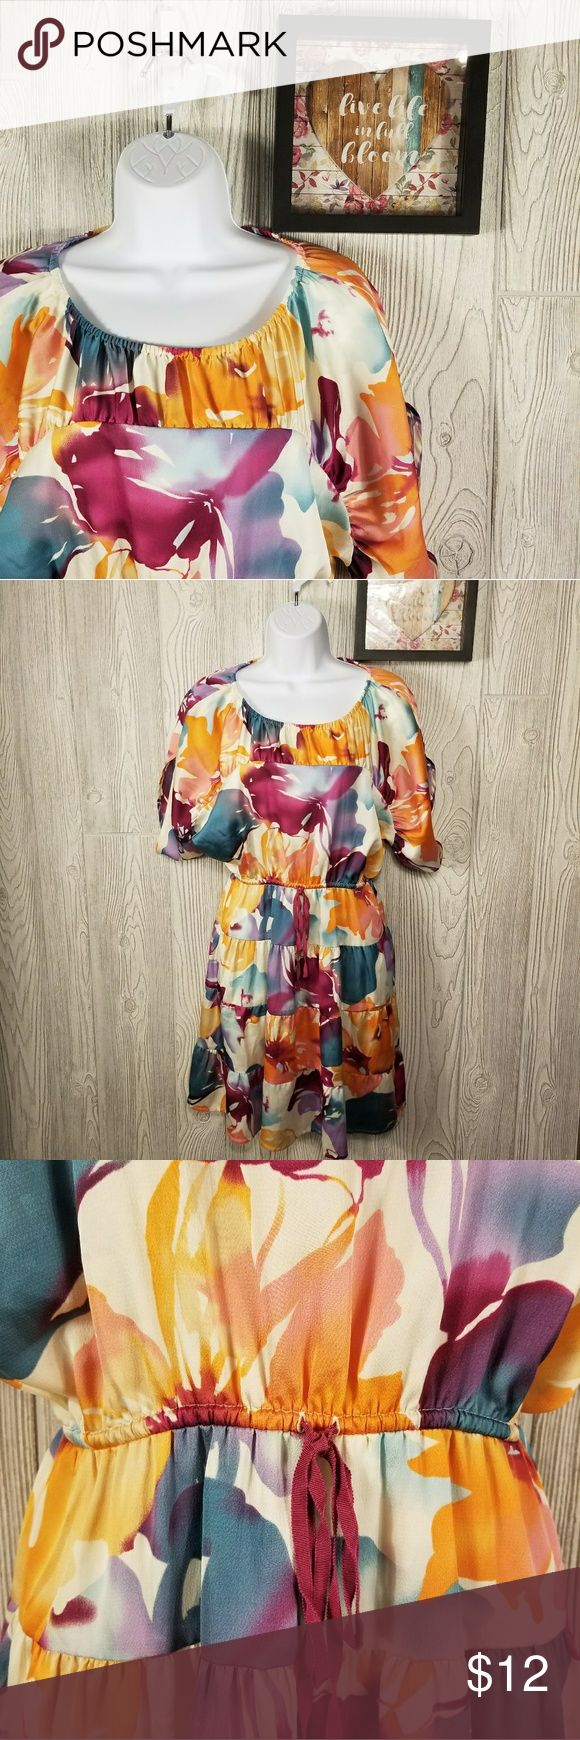 Ann Taylor Loft Floral Dress Ann Taylor Loft Floral Dress Size XXS short sleeve - gather waist Cream, Greens, Oranges and Pinks in color Length form the neck - 30 inches Pit to Pit - 20 inches Elastic waist start at- 23 inches Skirt length of dress from waist - 19 inches  051 Ann Taylor Loft Dresses Midi